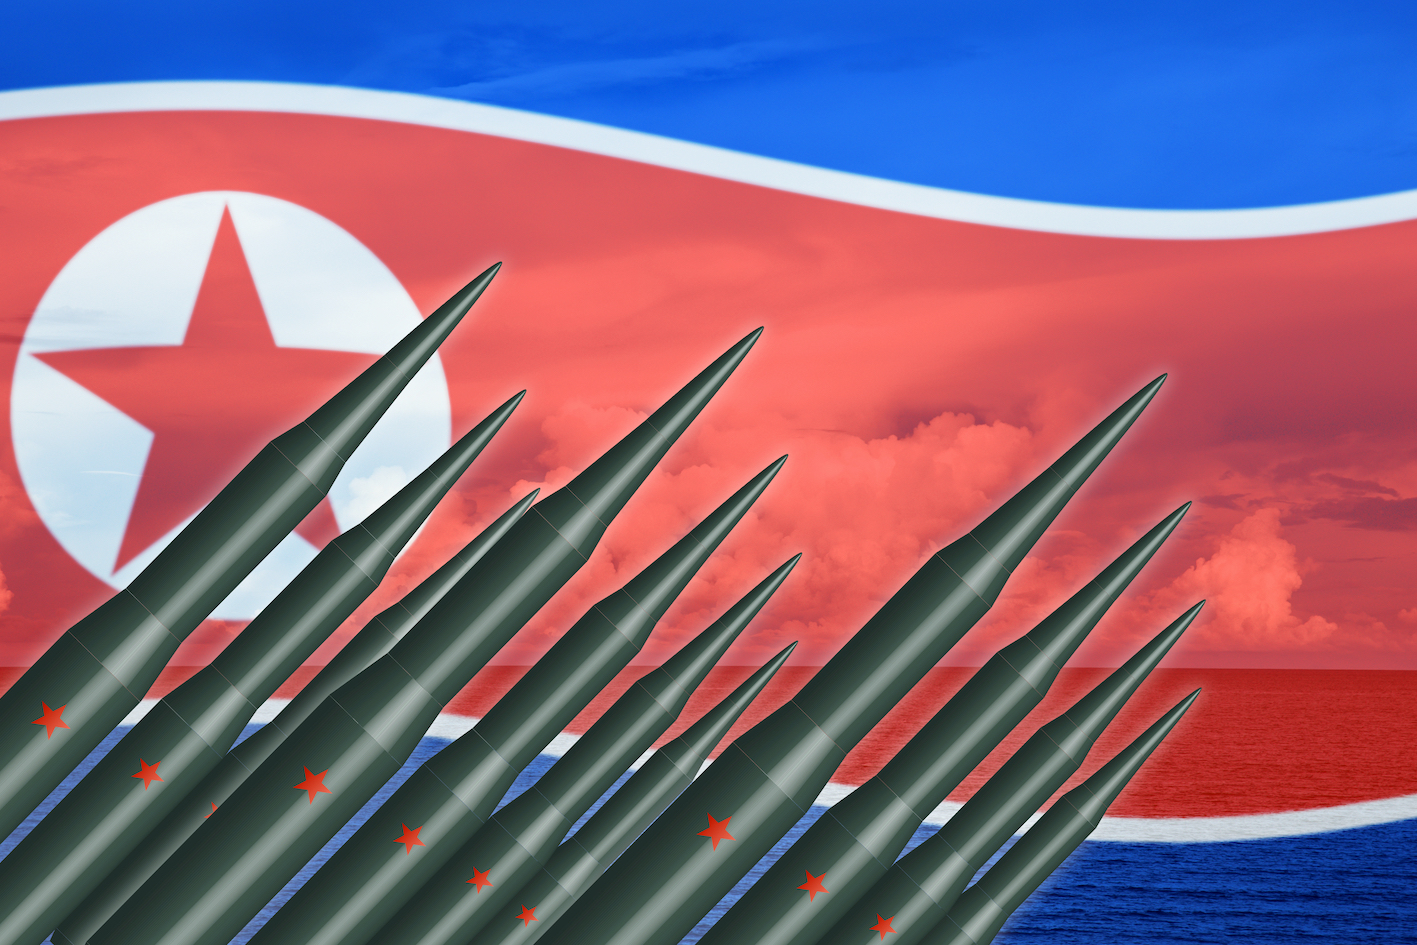 Shining a light on North Korea's illicit shipping and sanctions evasion practices